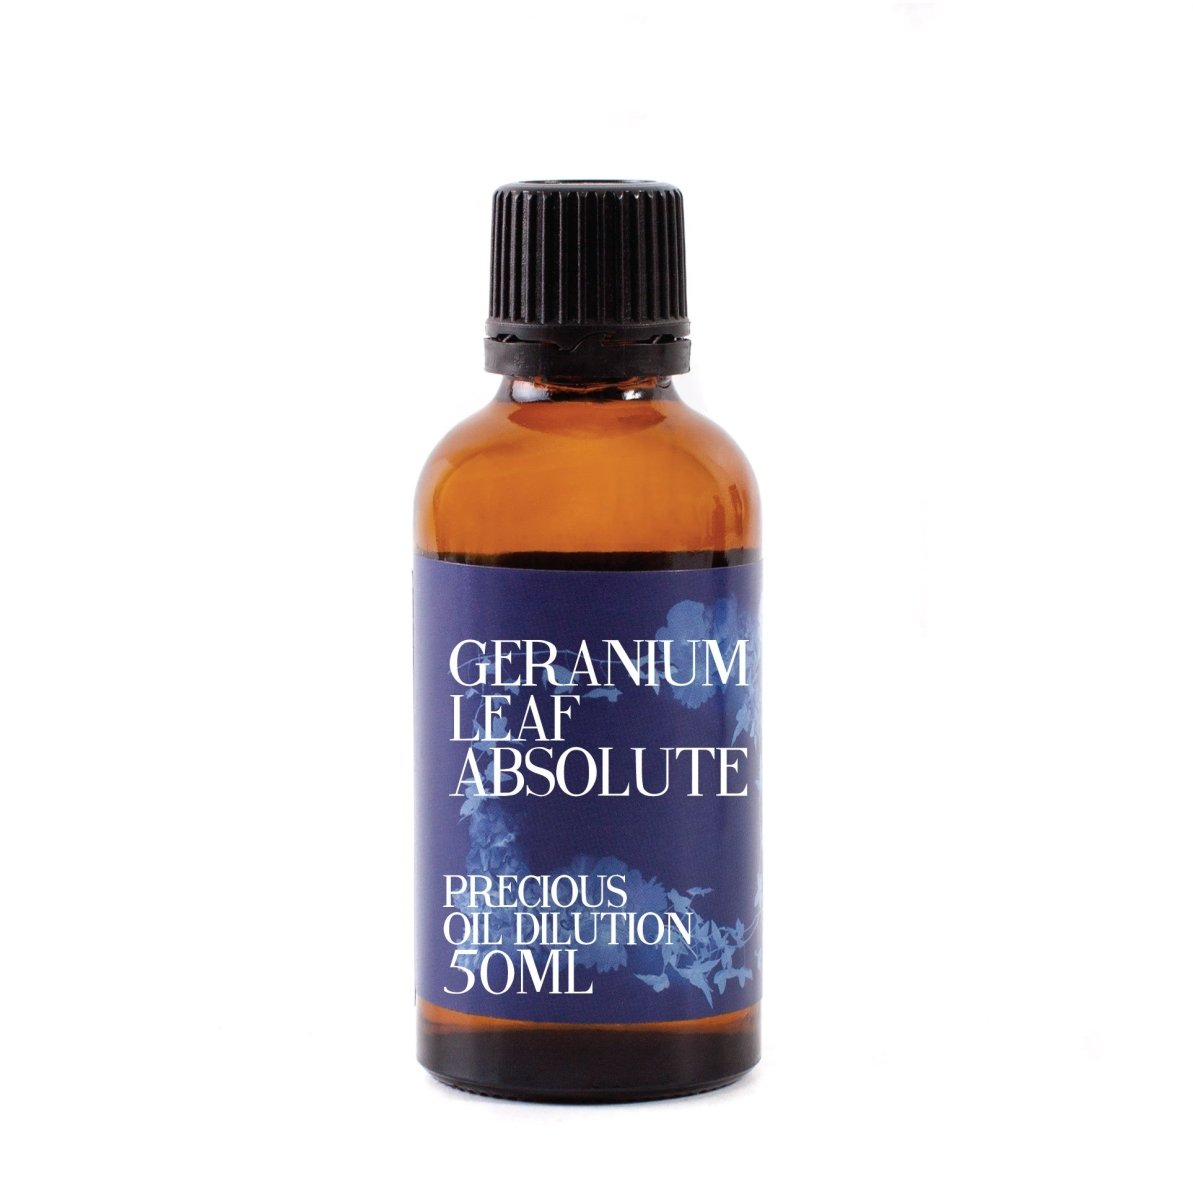 Geranium Leaf Absolute Oil Dilution - Mystic Moments UK